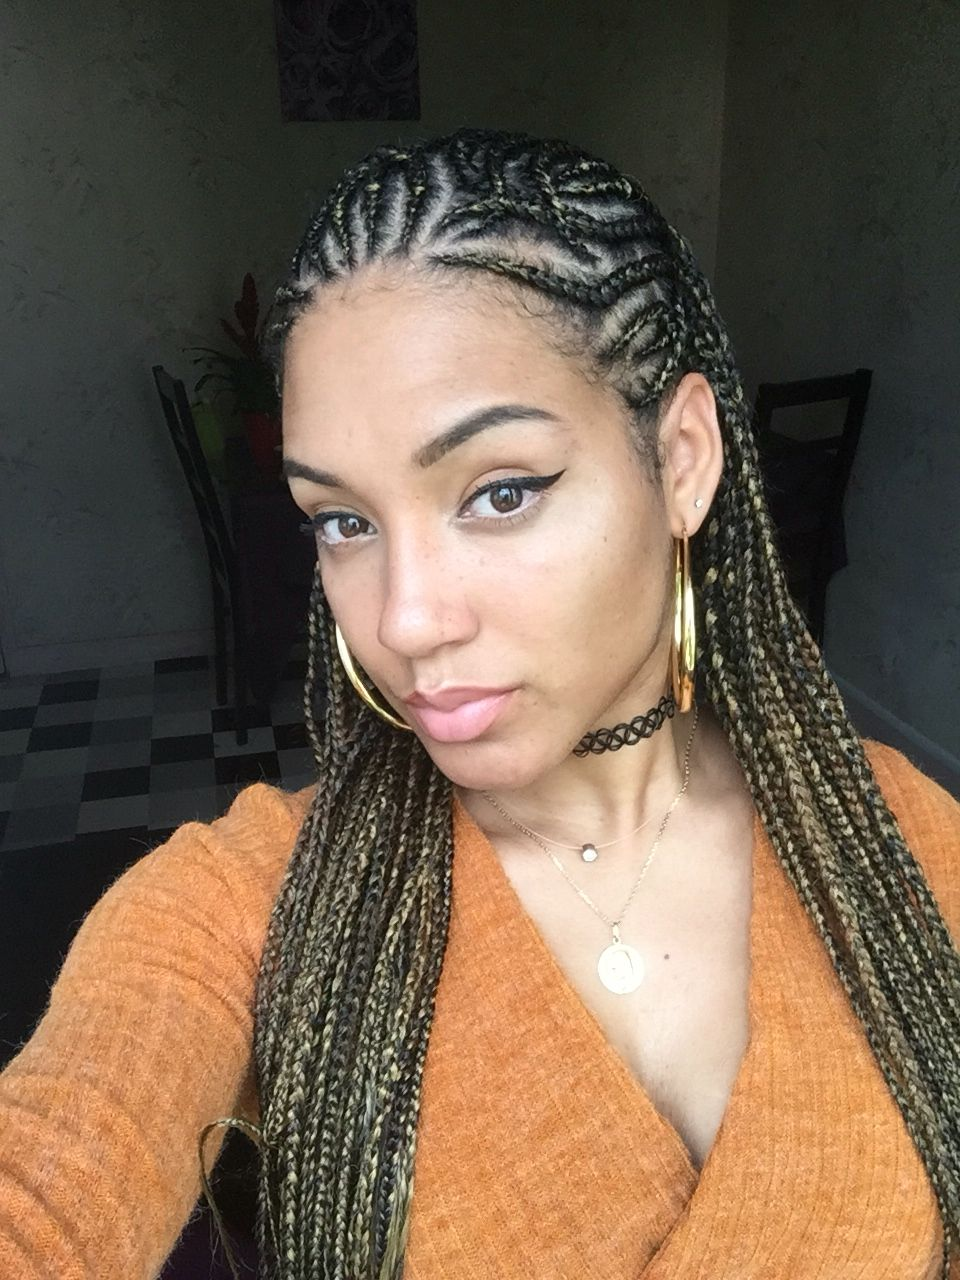 black single women in long key Free classified ads for women seeking men and everything else find what you are looking for or create your own ad for  single lady looking for a man to love,.